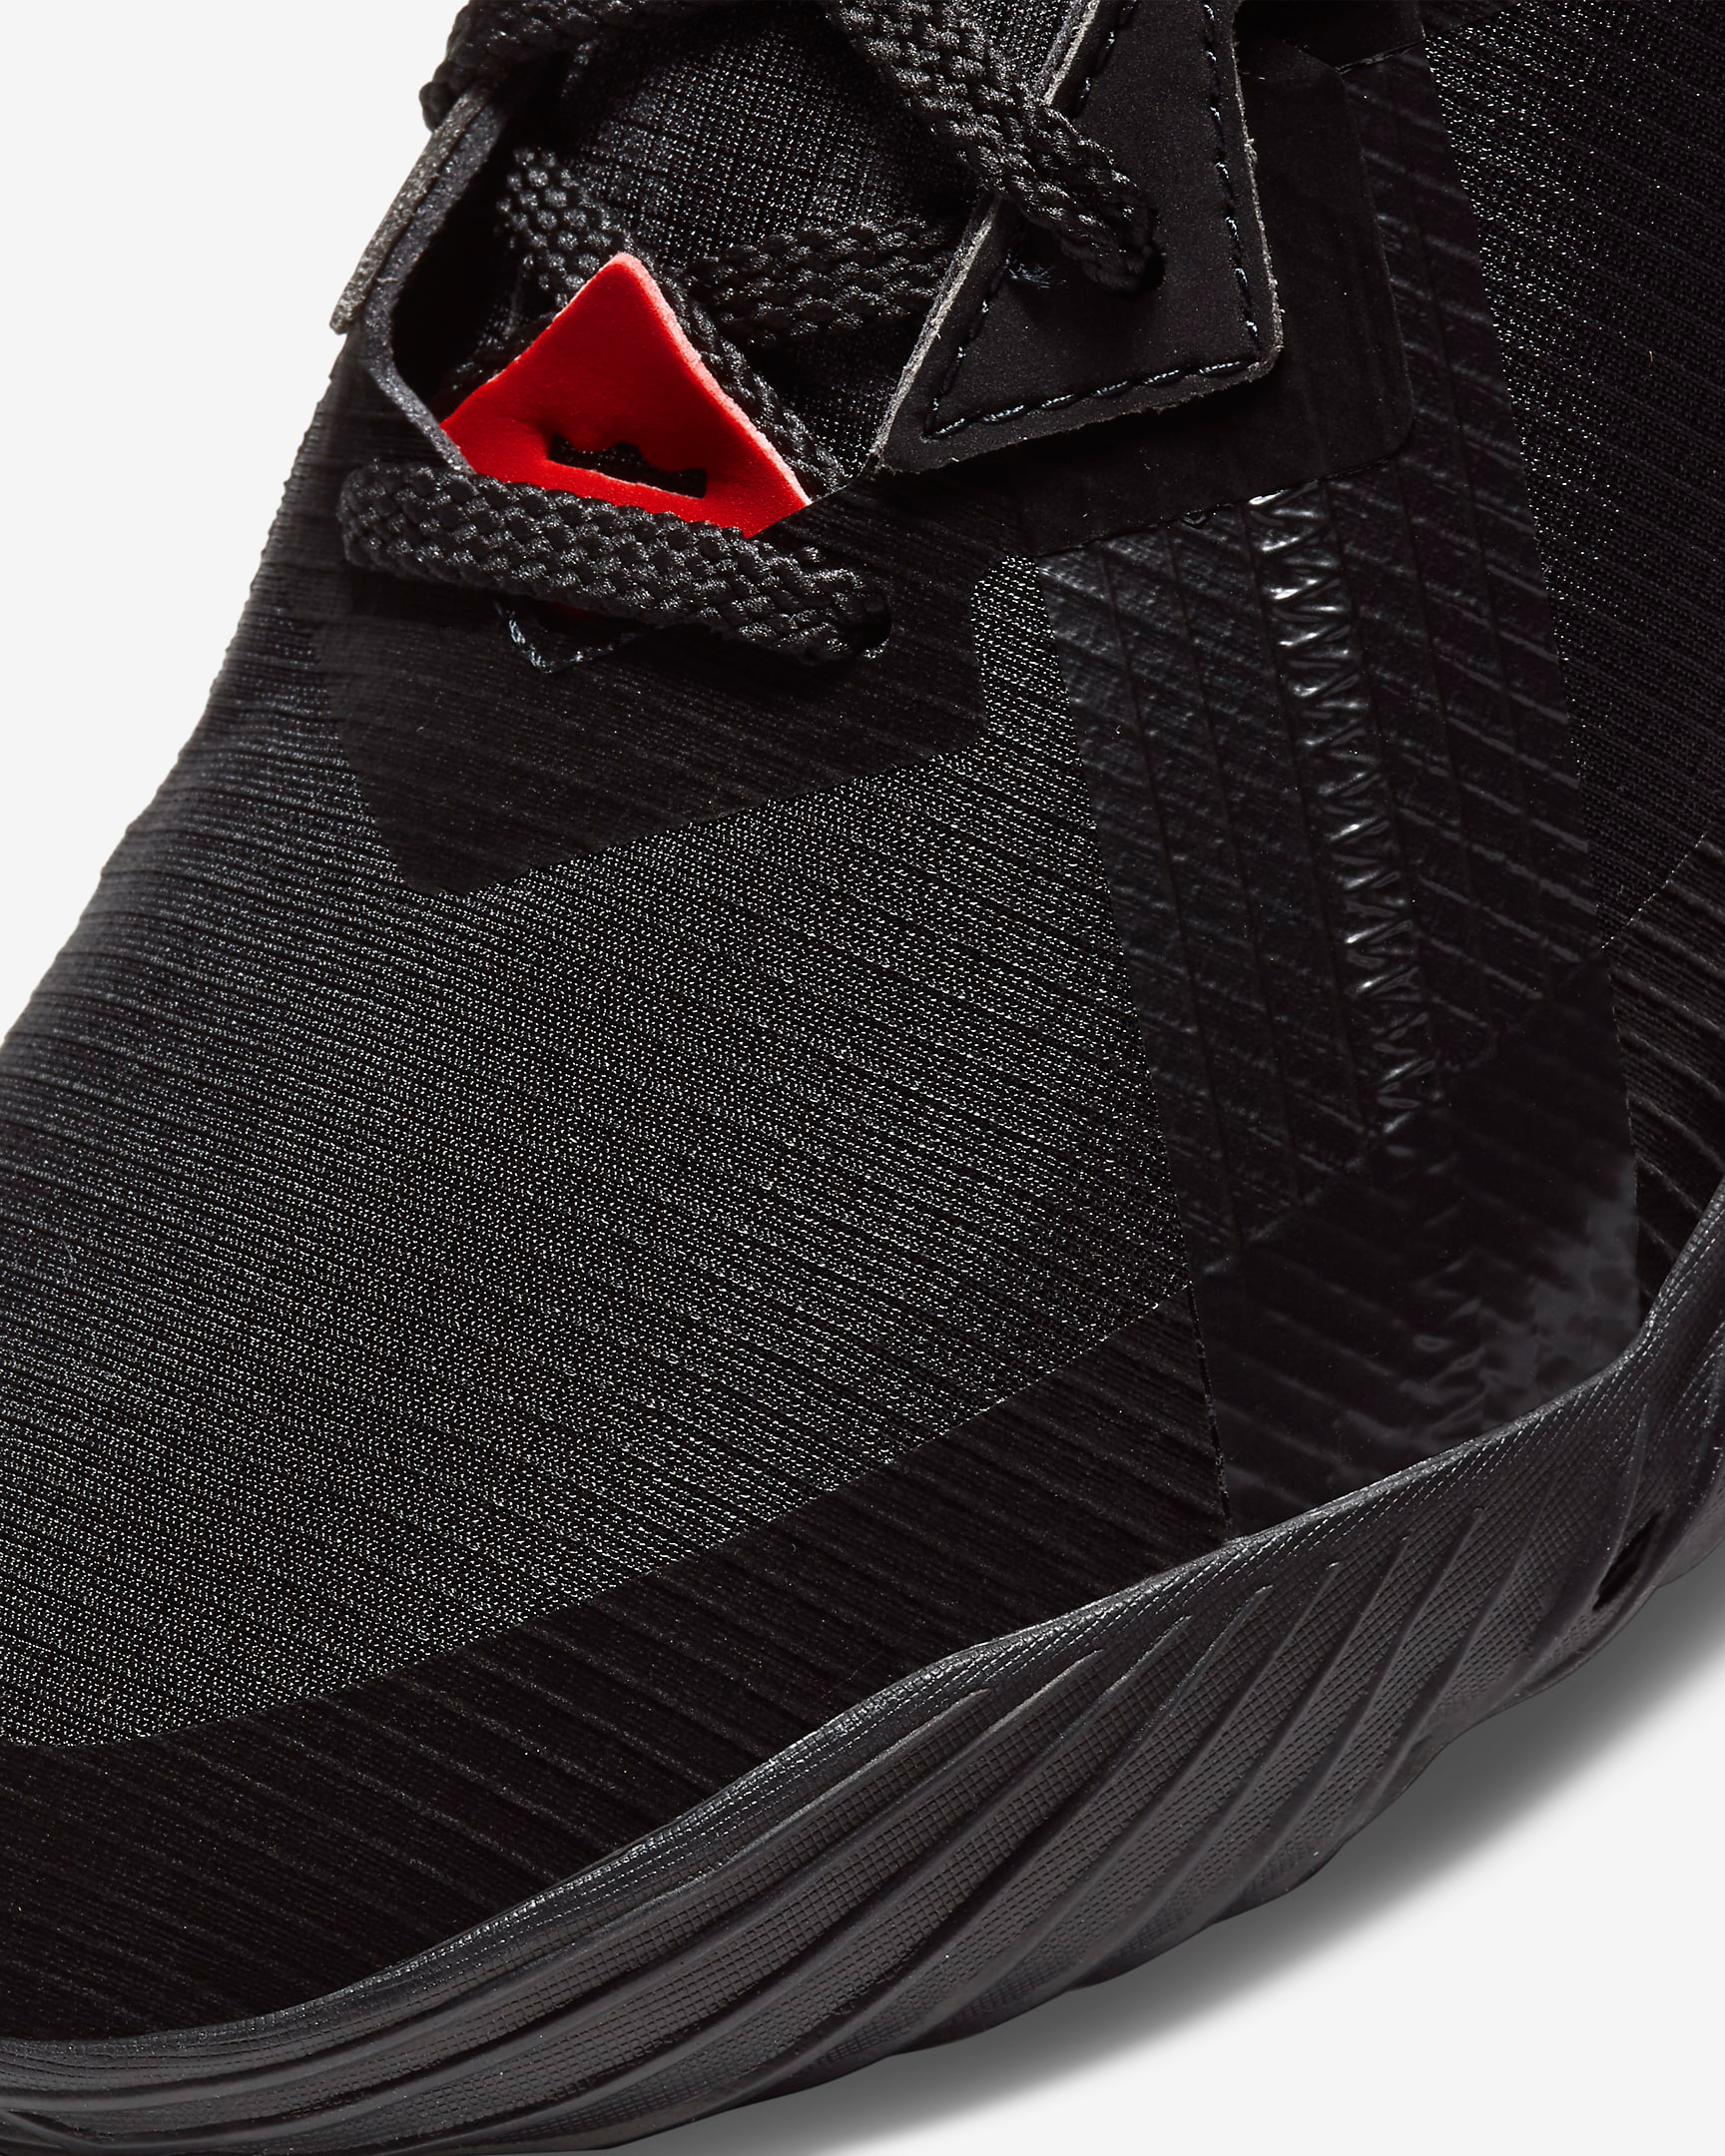 nike-lebron-18-low-bred-black-university-red-release-date-price-where-to-buy-8